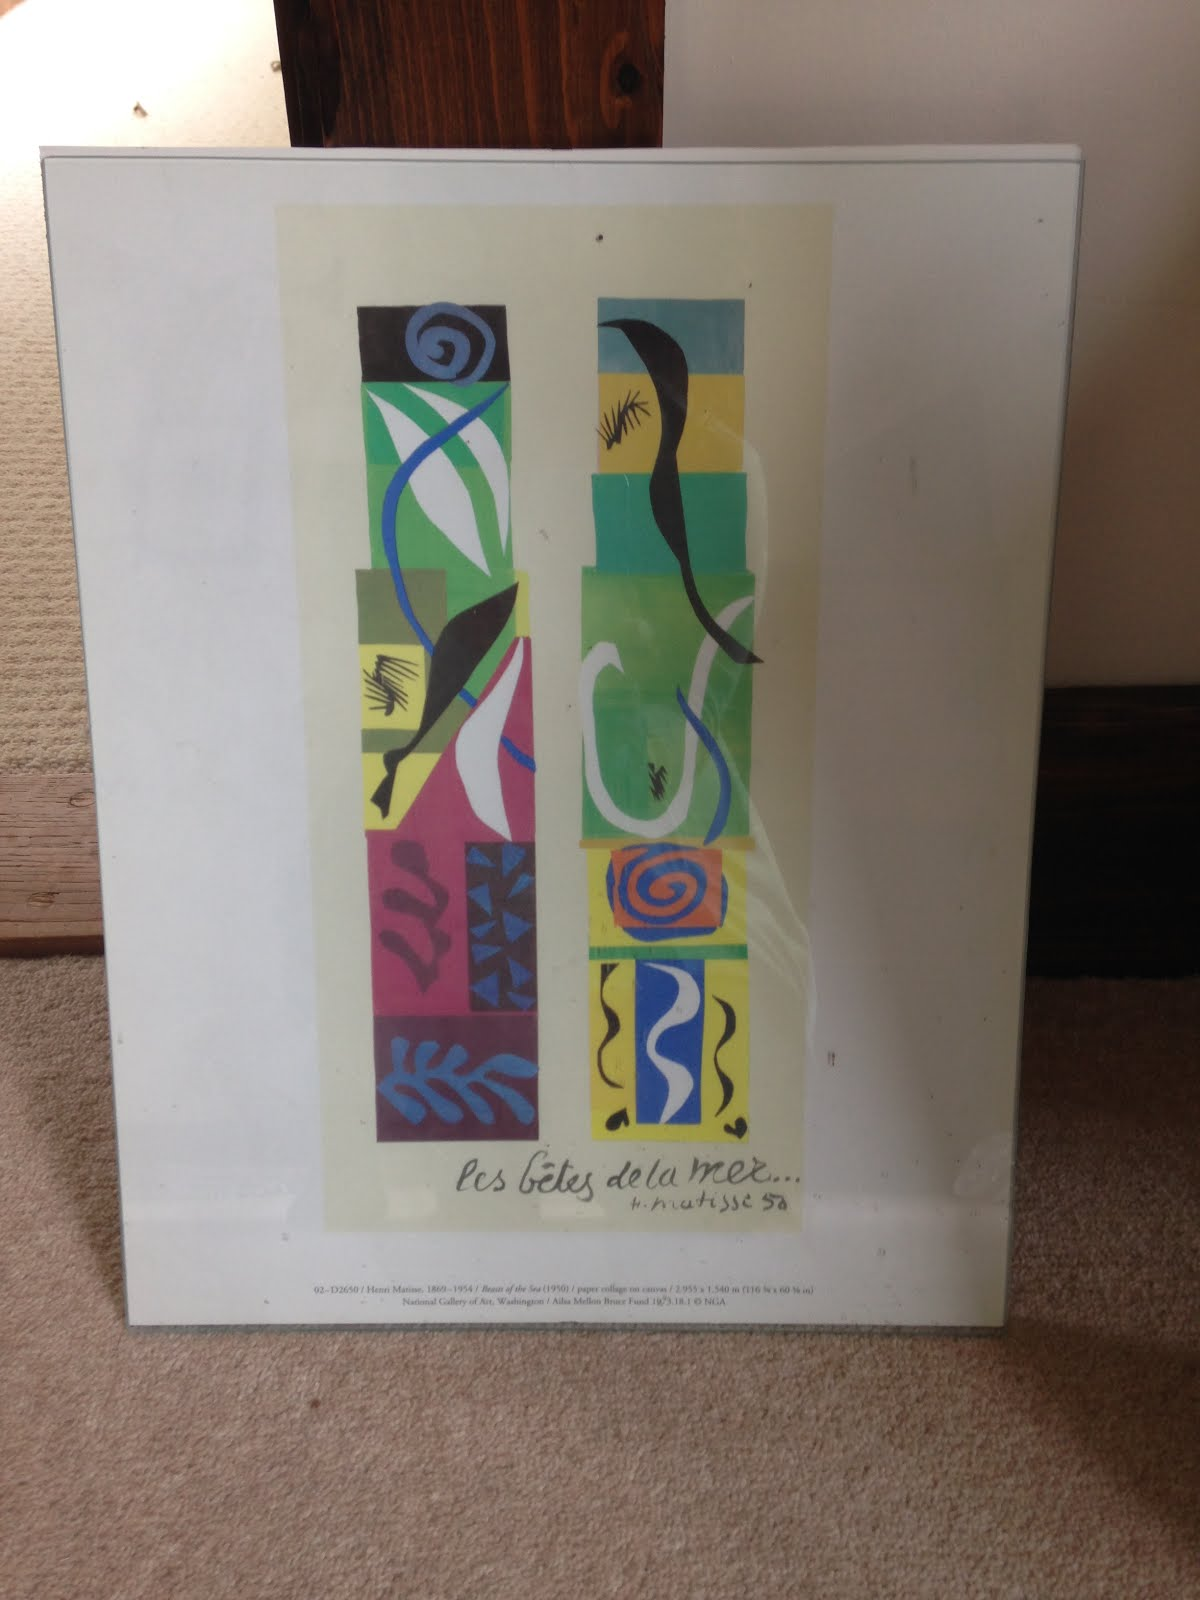 # 34 Frame the Matisse print